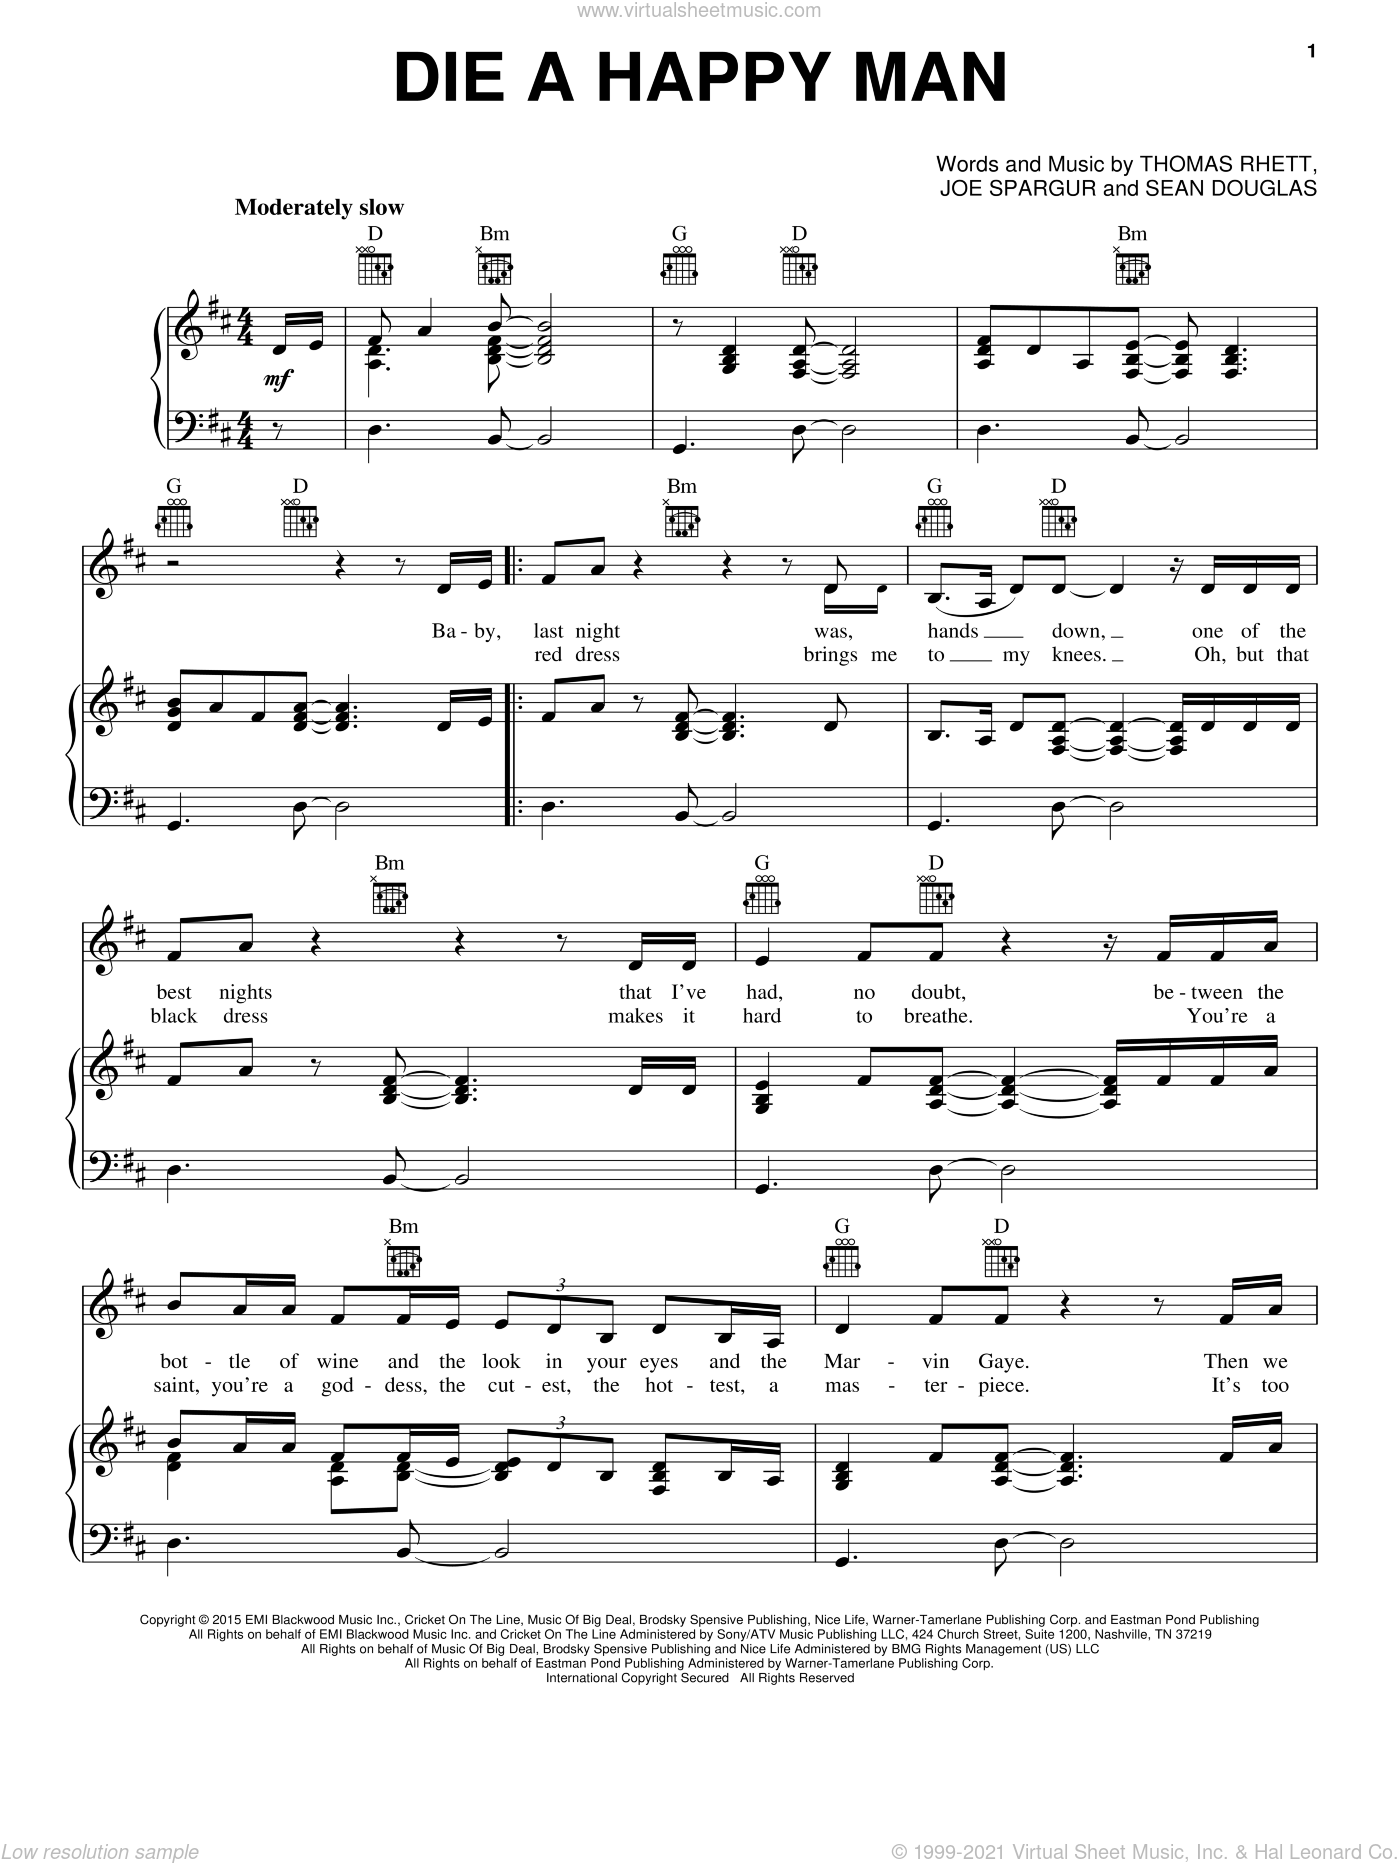 Die A Happy Man sheet music for voice, piano or guitar by Thomas Rhett, Joe Spargur and Sean Douglas, intermediate